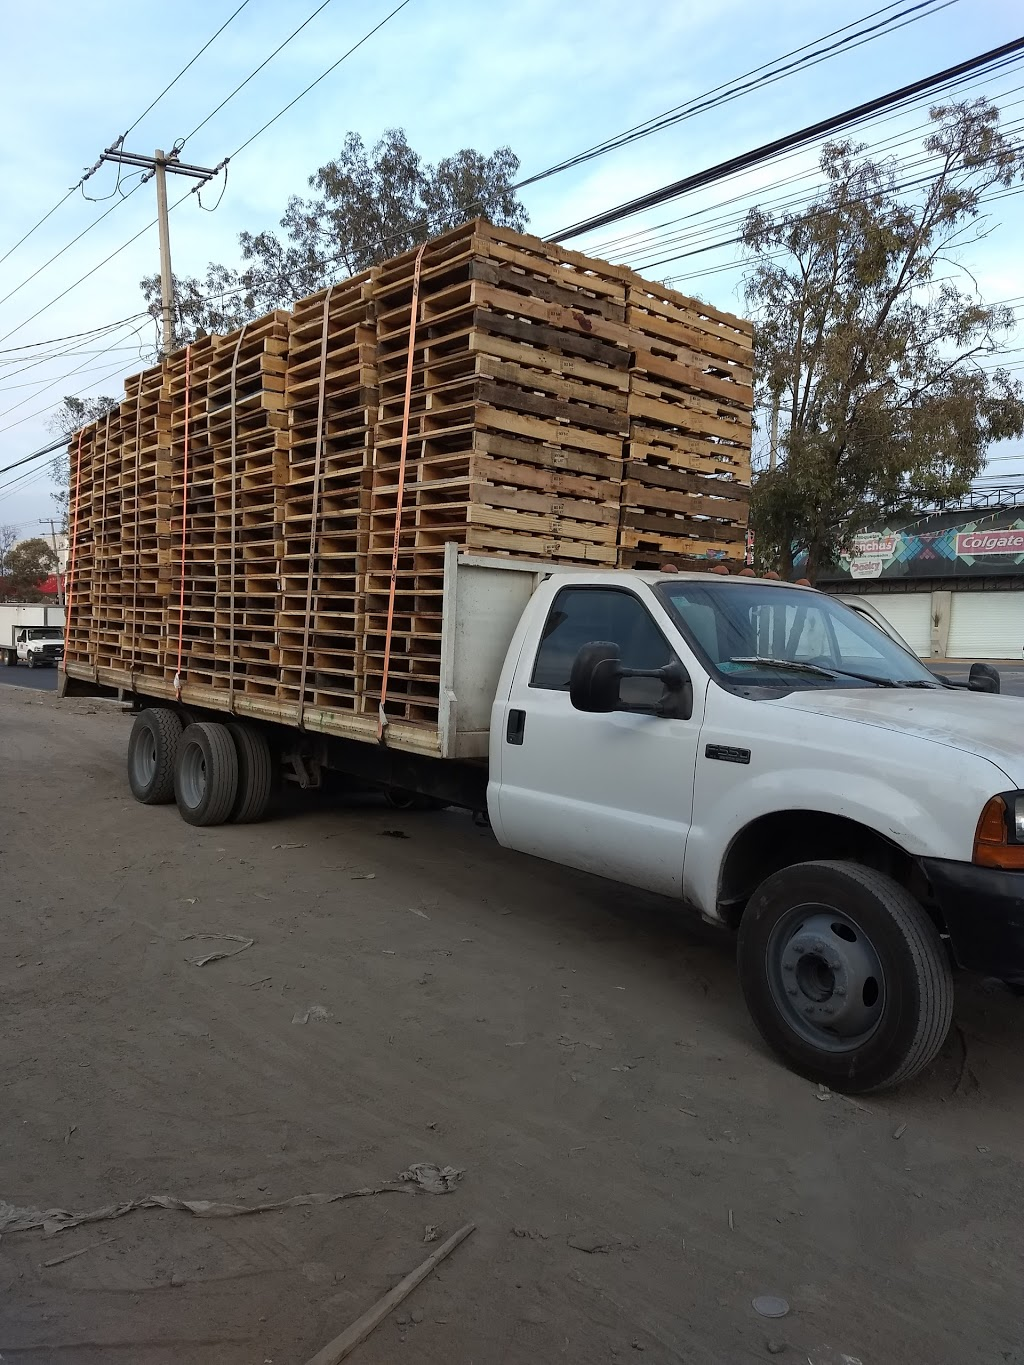 D & G Pallet Services Inc - point of interest    Photo 1 of 7   Address: 4445 W 5th Ave, Chicago, IL 60624, USA   Phone: (773) 265-8470